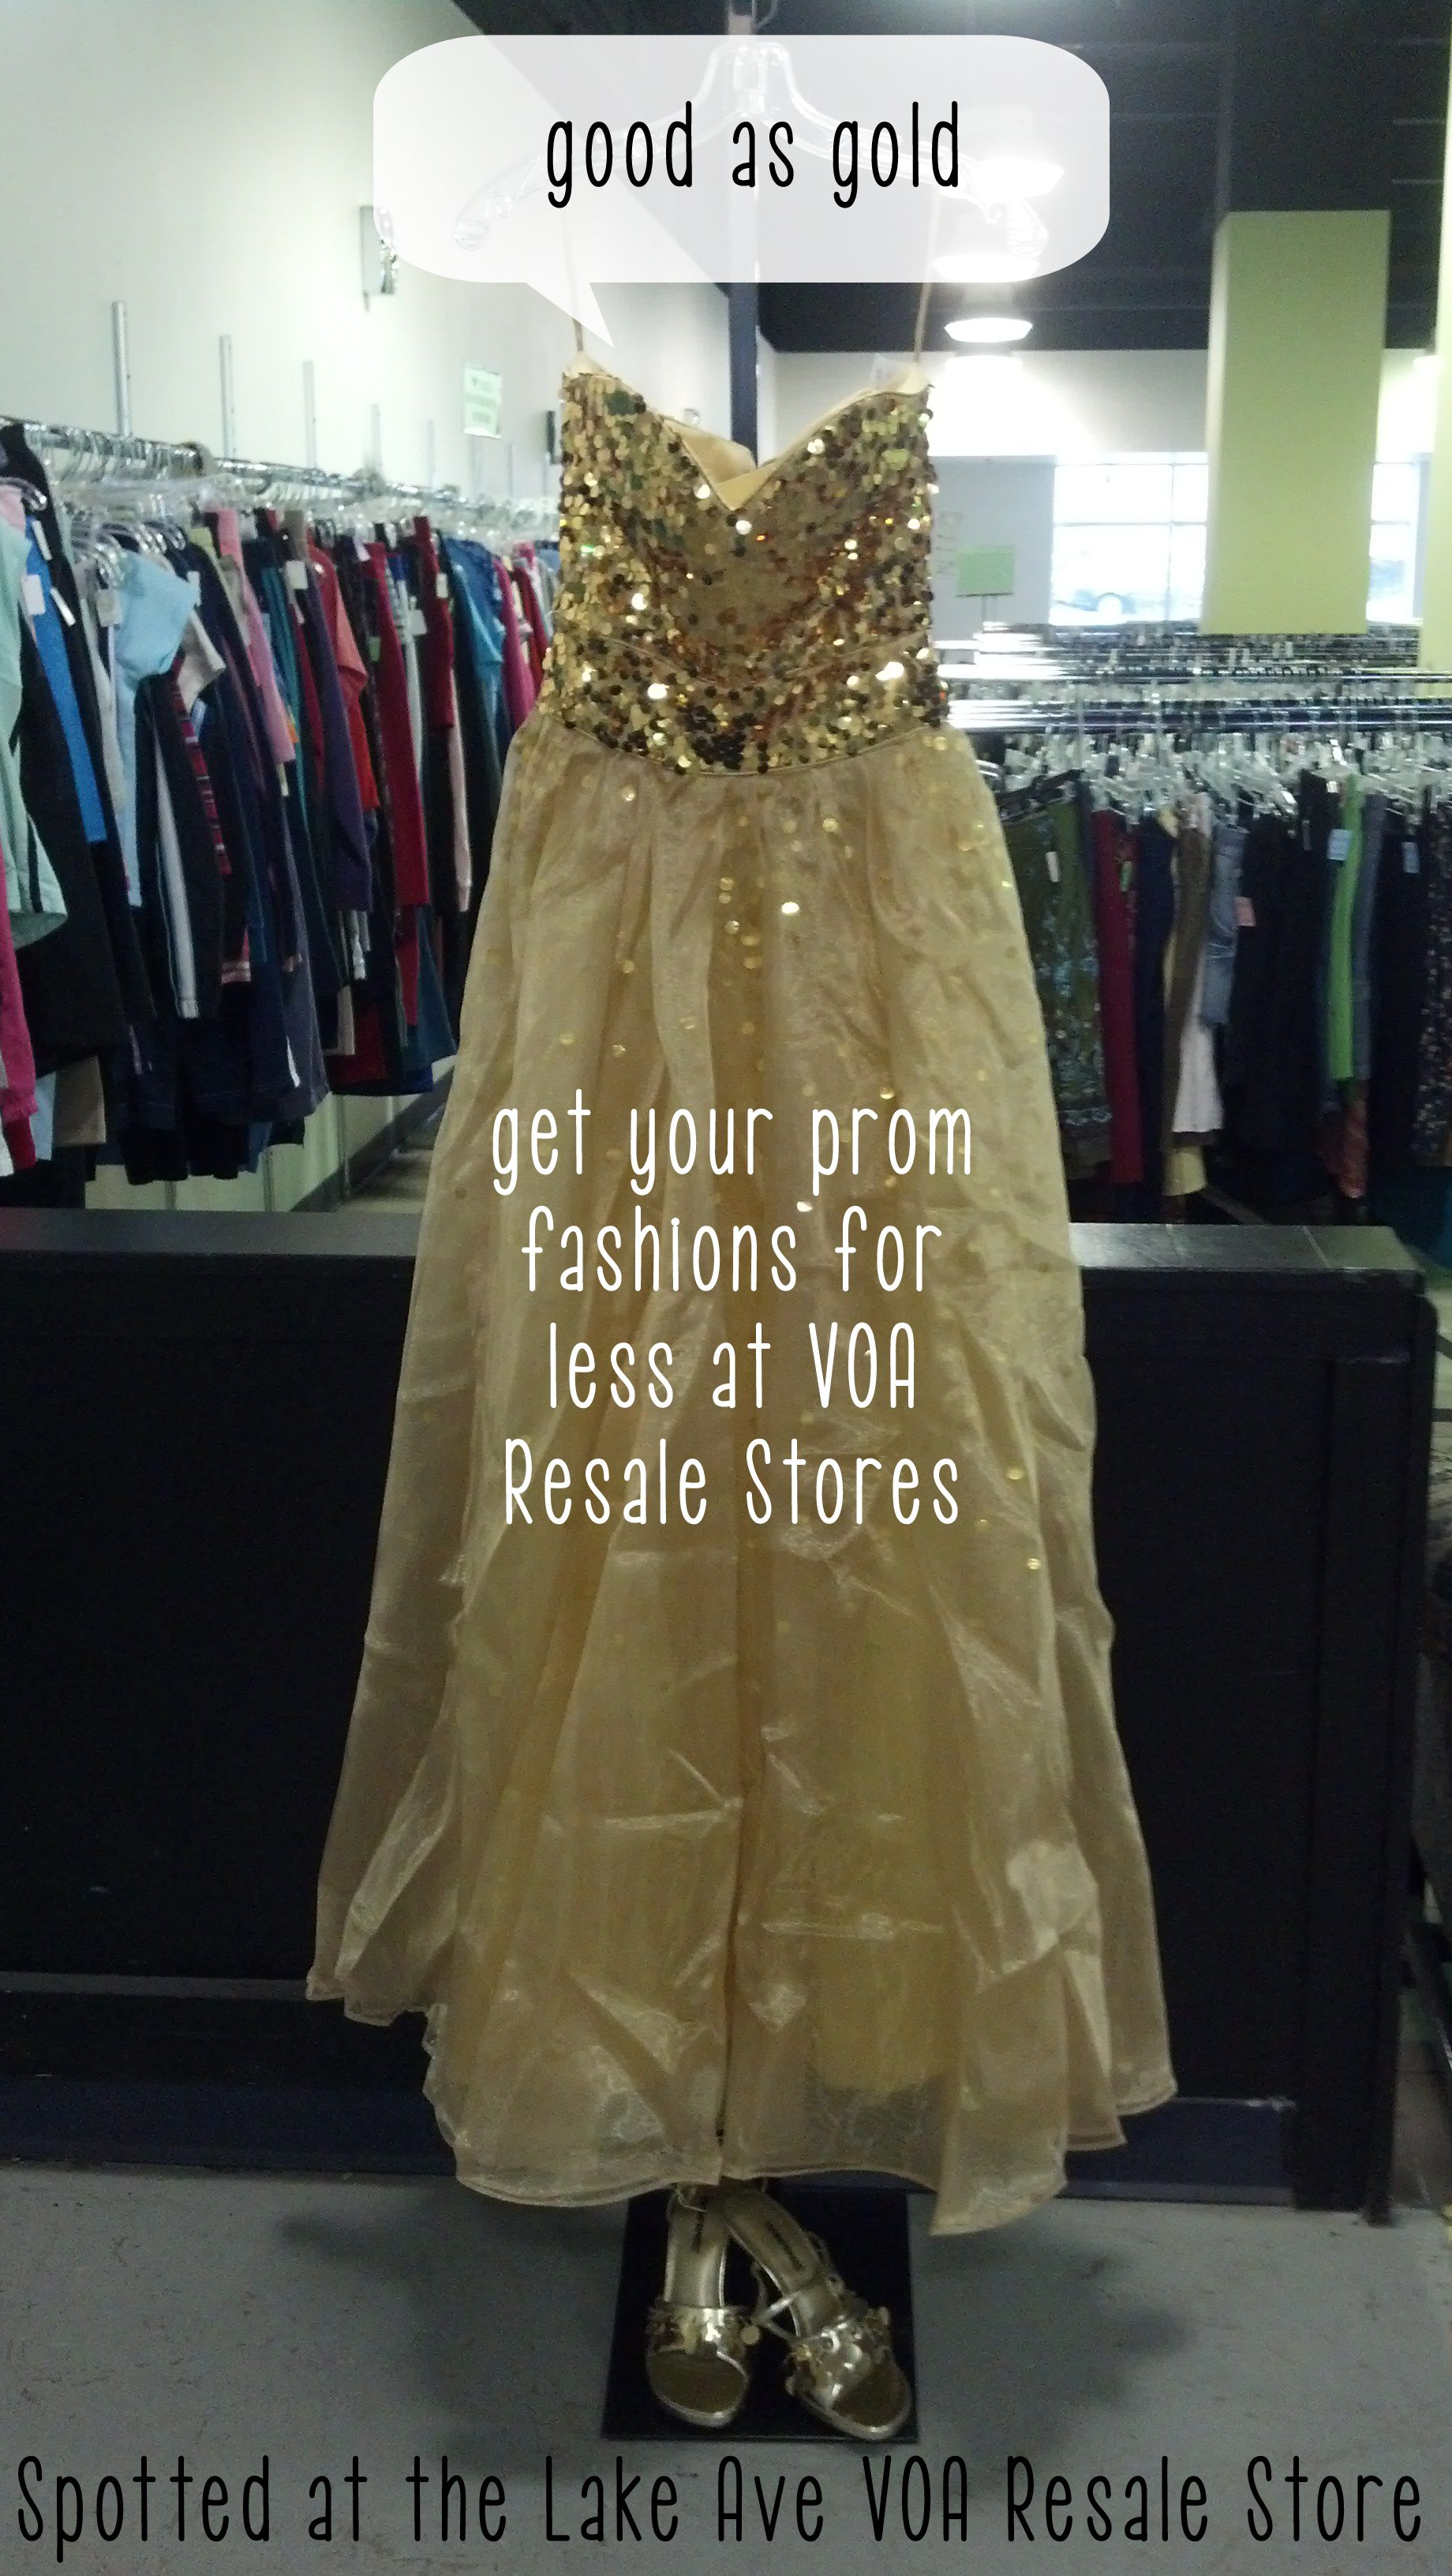 Spotted at Lake Ave VOA Resale Store. Find your prom fashion for ...